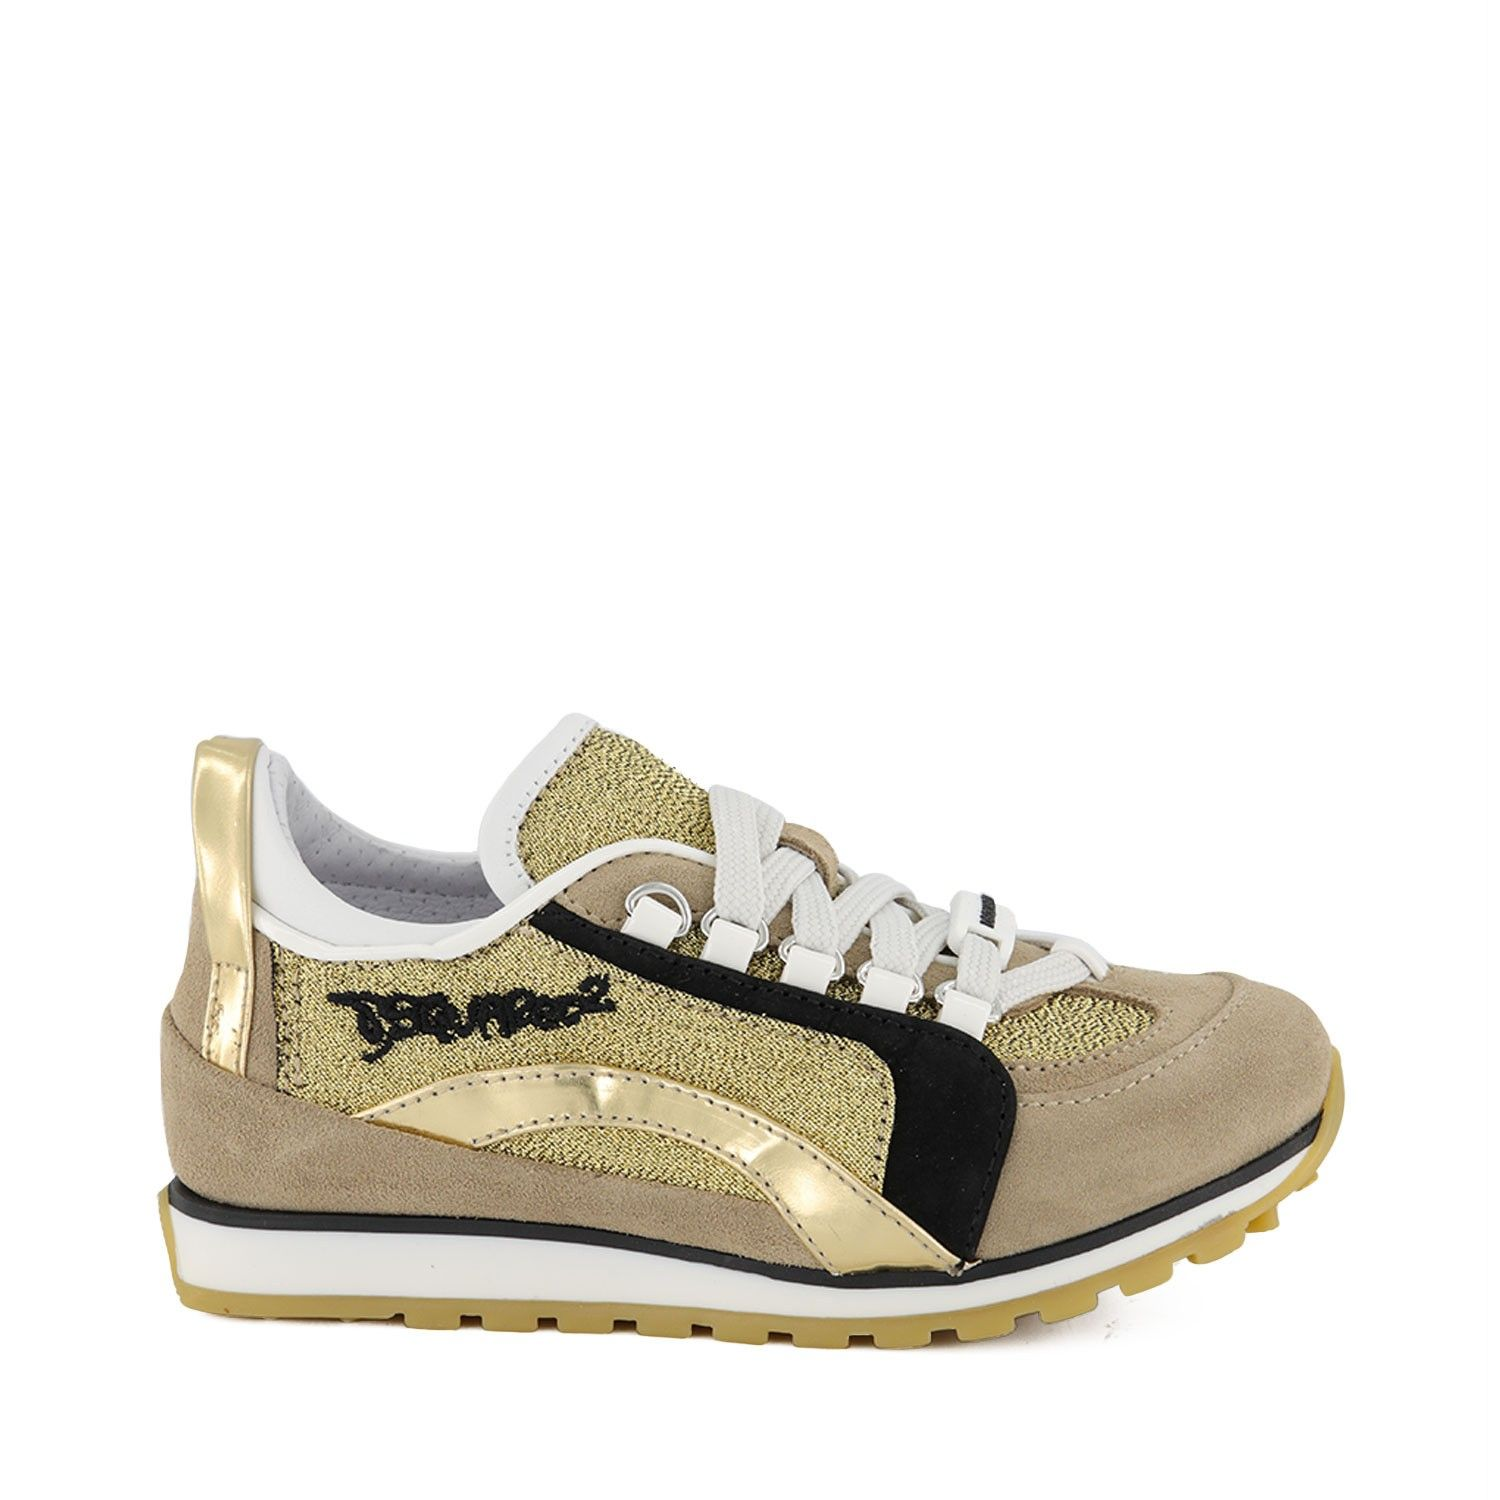 Picture of Dsquared2 63511 kids sneakers gold